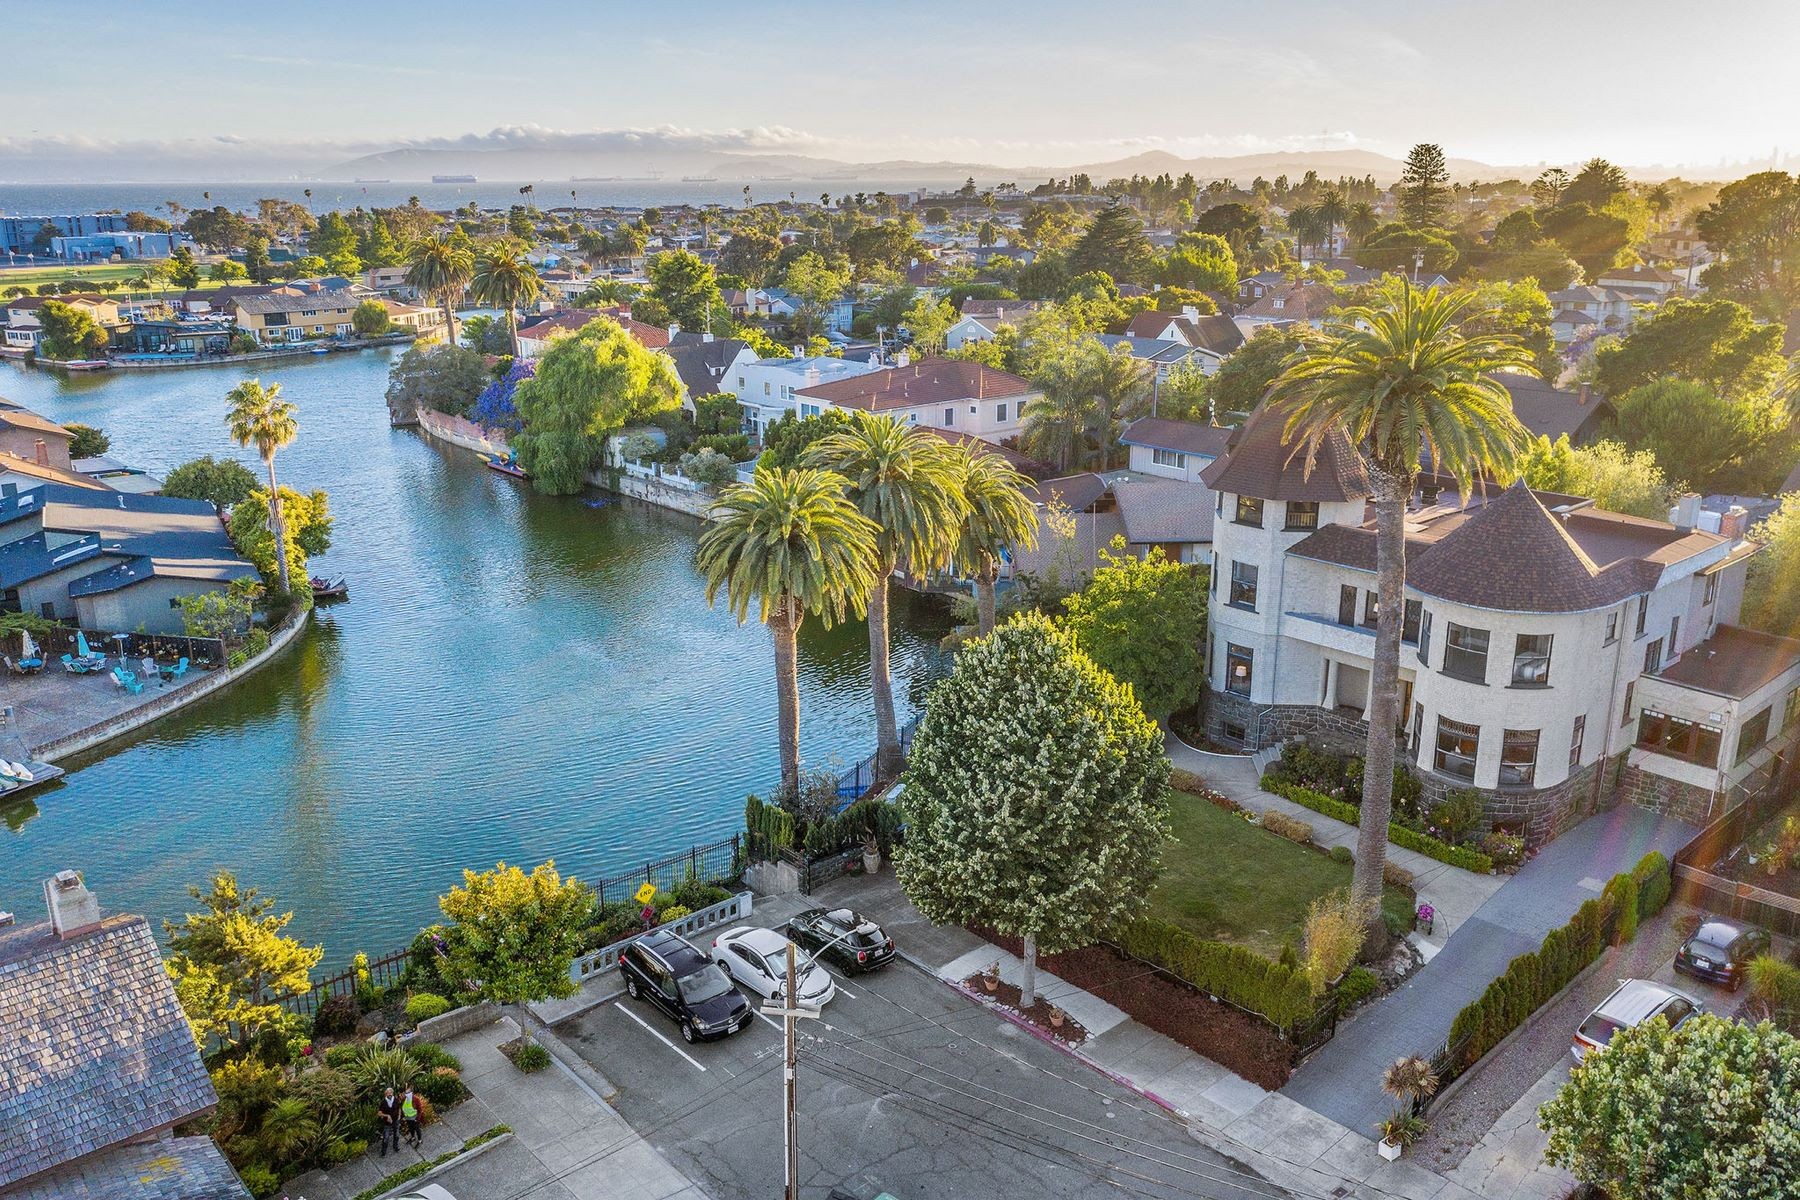 Single Family Homes for Sale at Stately Alameda Historic Mansion 891 Union Street Alameda, California 94501 United States